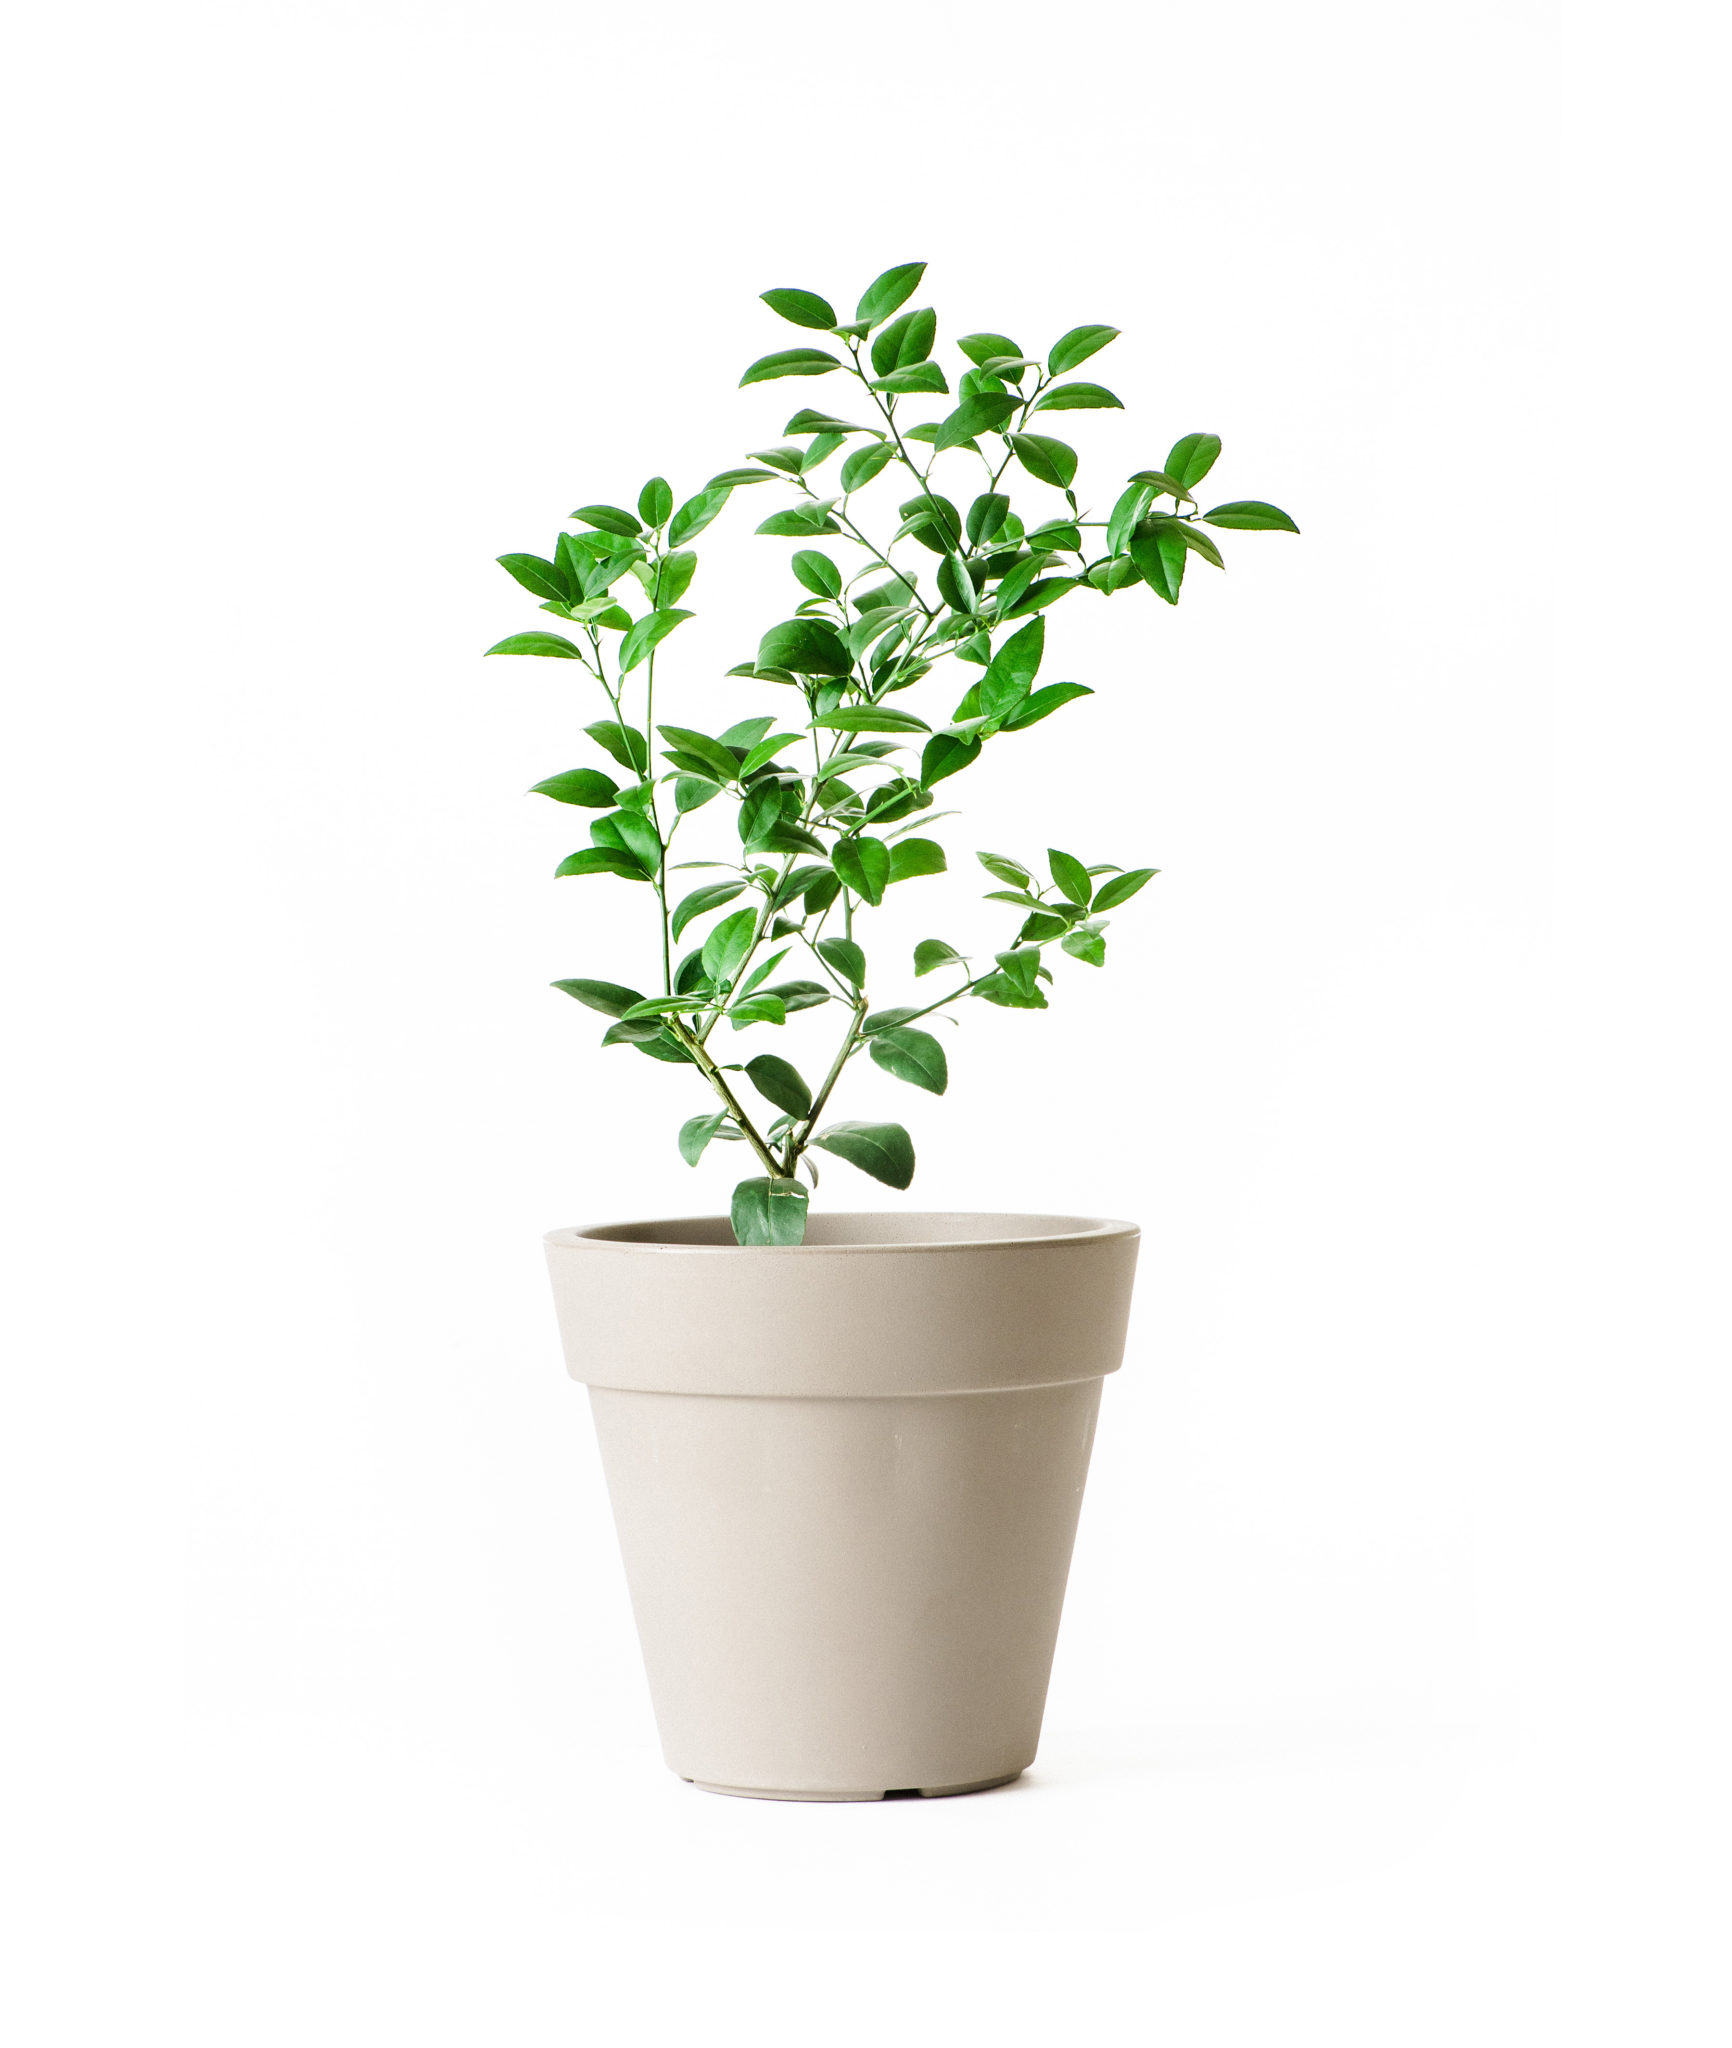 Dwarf Key Lime Tree (Age: 4 - 5 Years, Height: 3 - 4 FT)